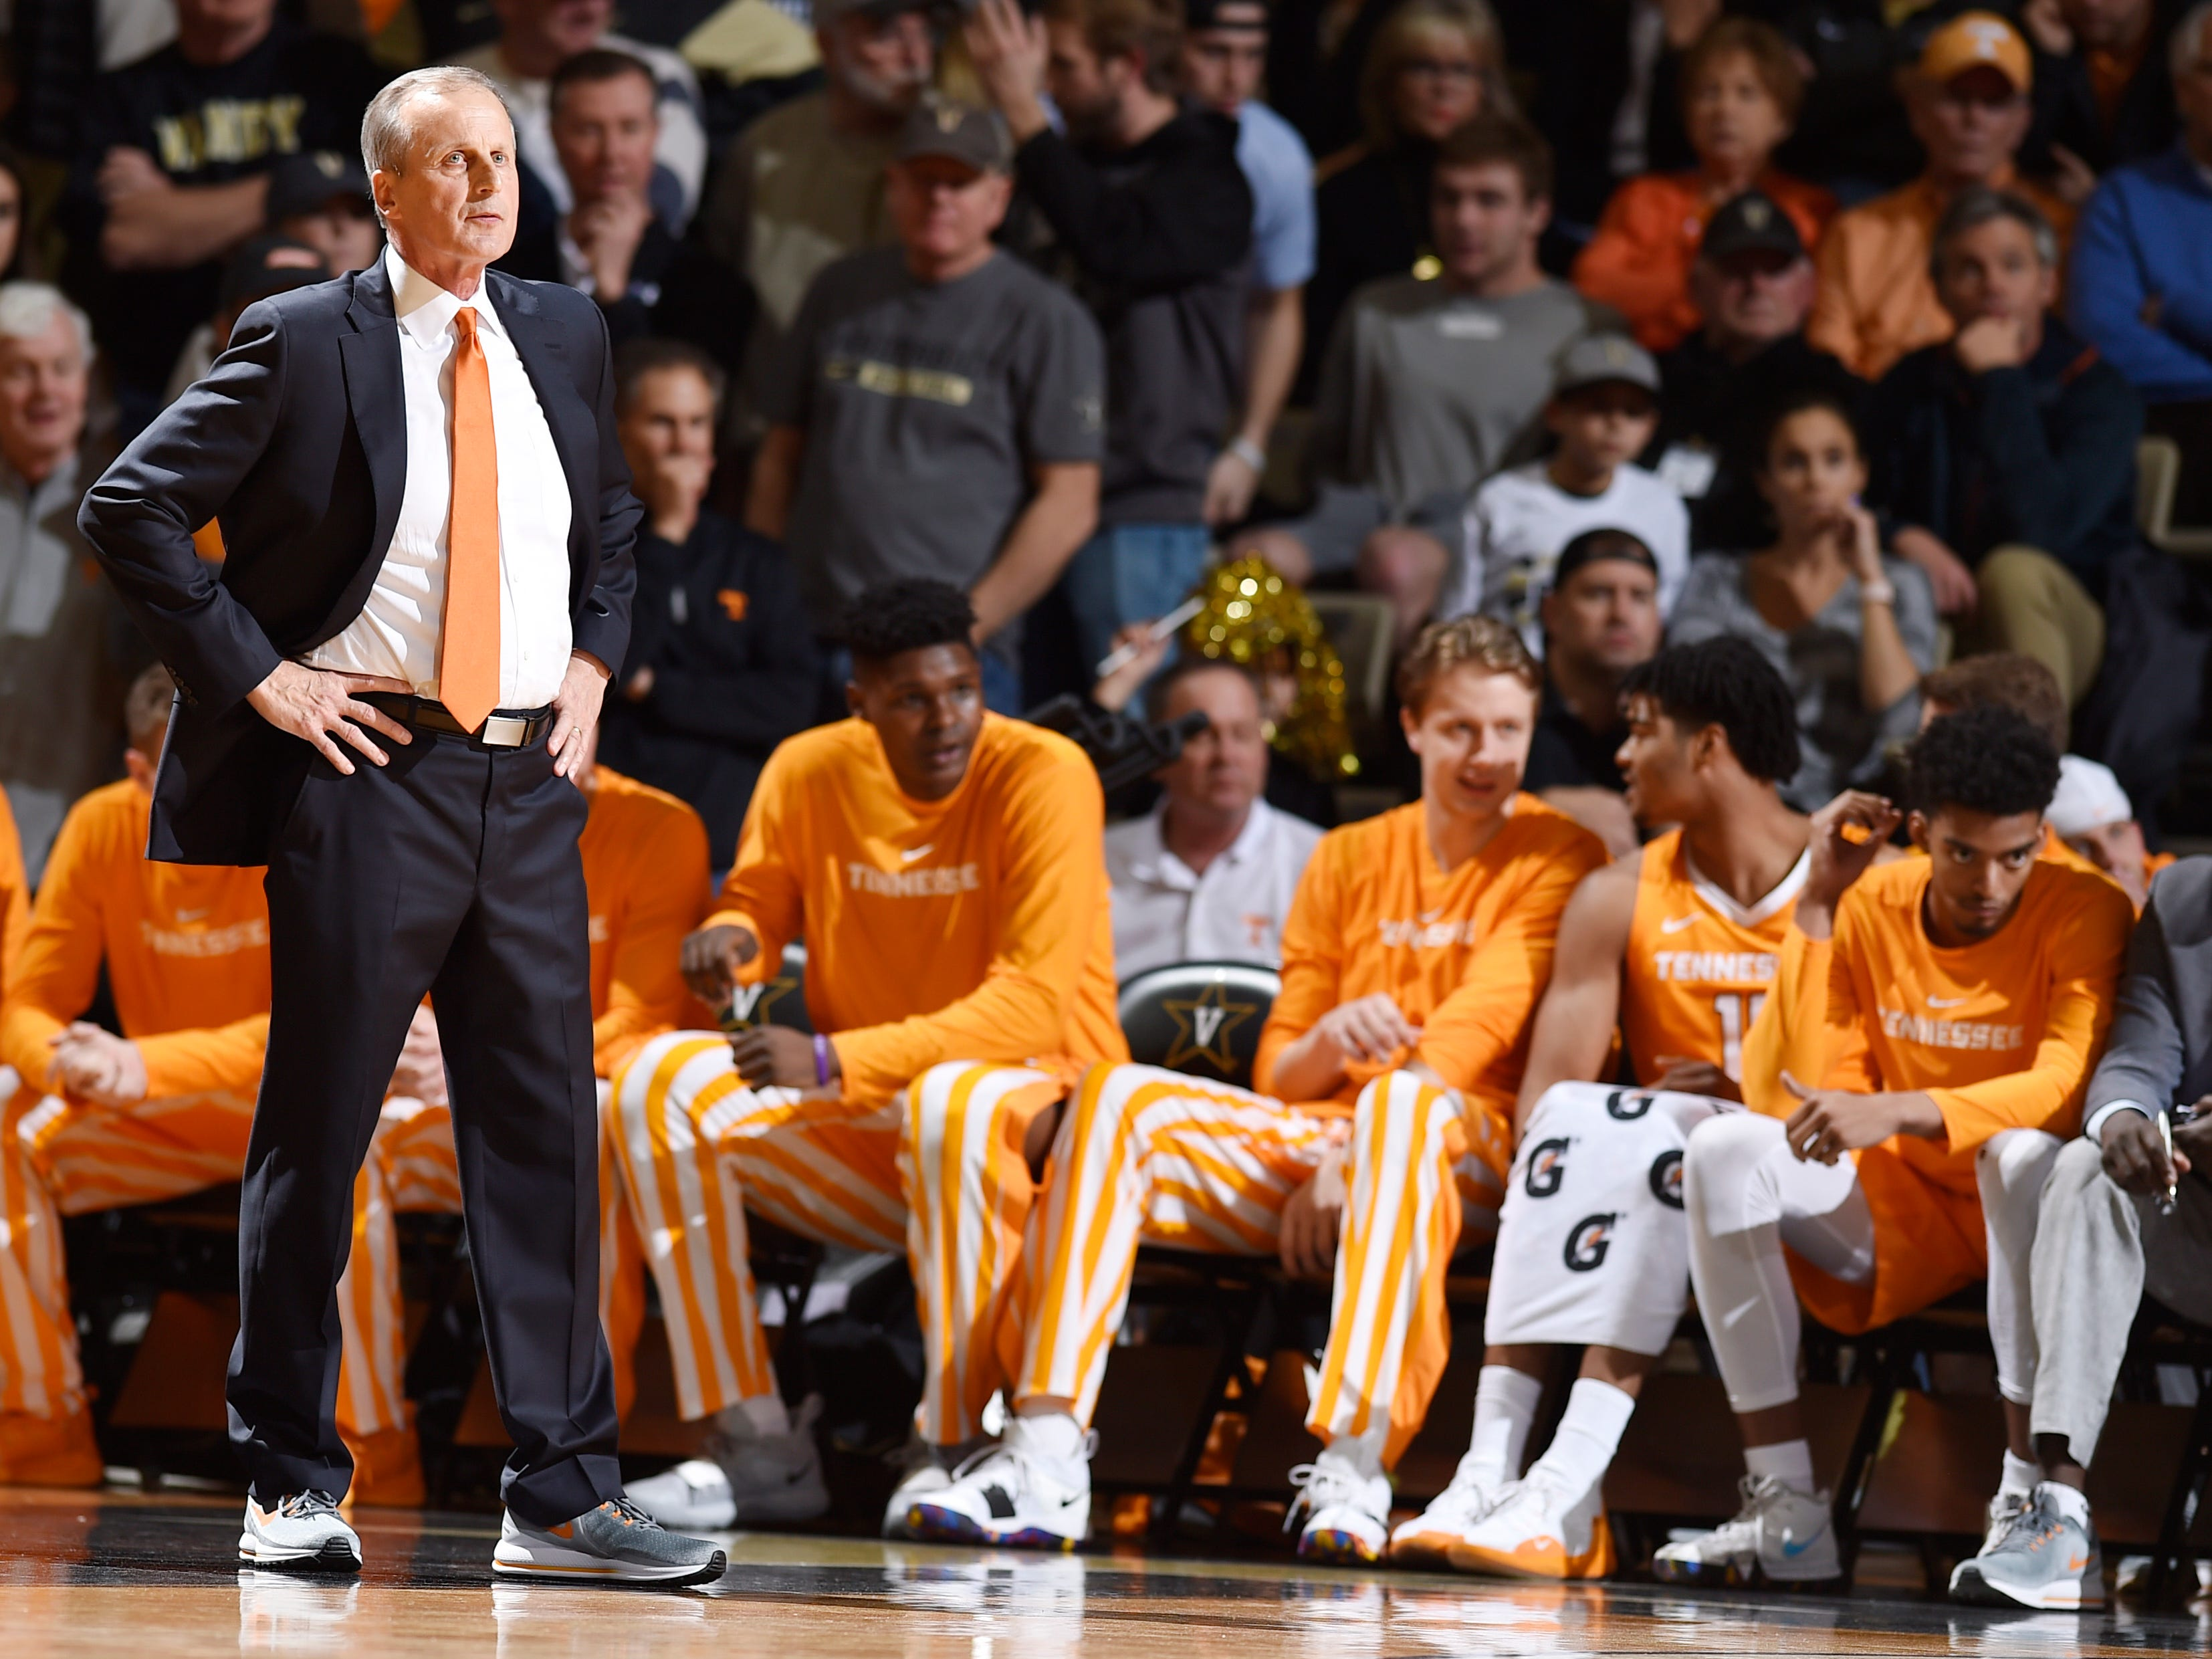 UT head coach Rick Barnes watches his team during the second half at Memorial Gym in Nashville, Tenn., Wednesday, Jan. 23, 2019.